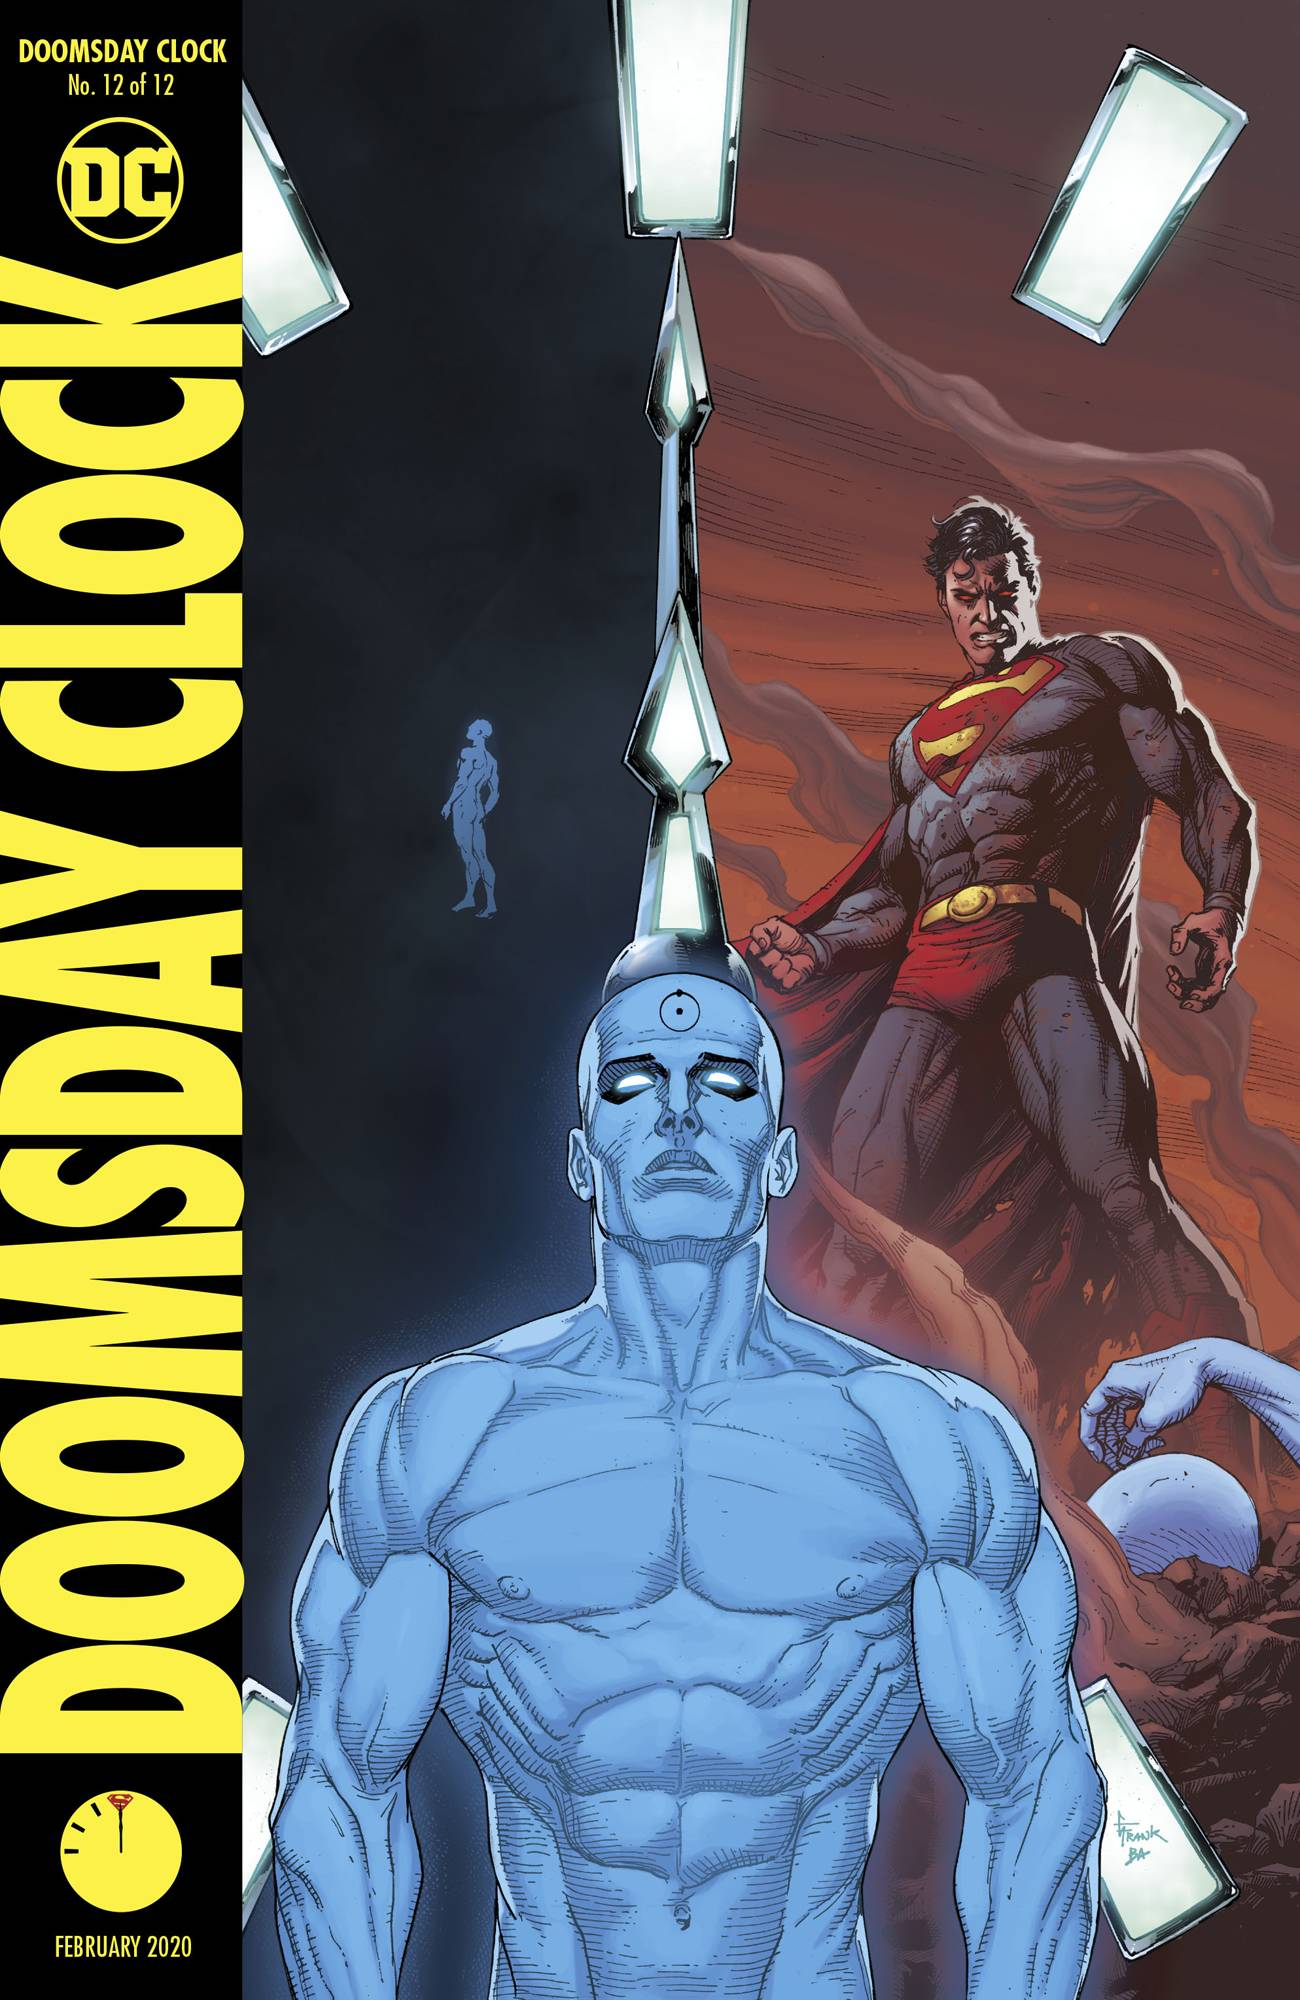 Oct190524 Doomsday Clock 12 Of 12 Var Ed Previews World